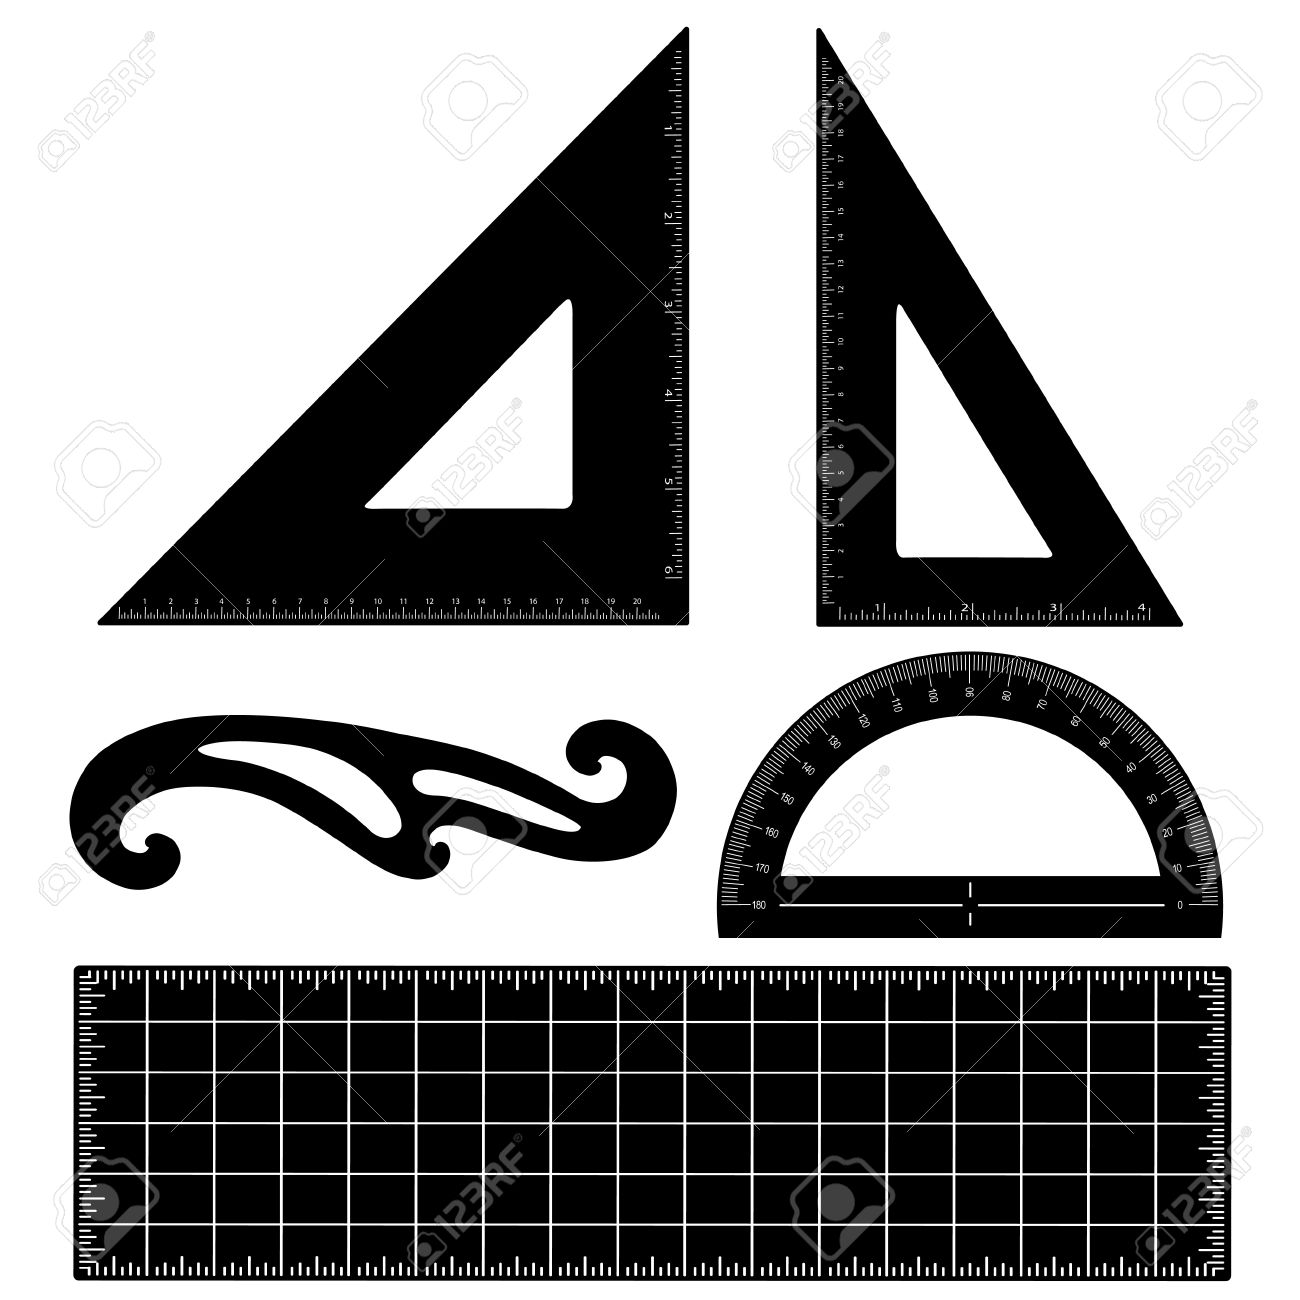 Drafting Tools For Architecture And Engineering Triangles, Ruler ...